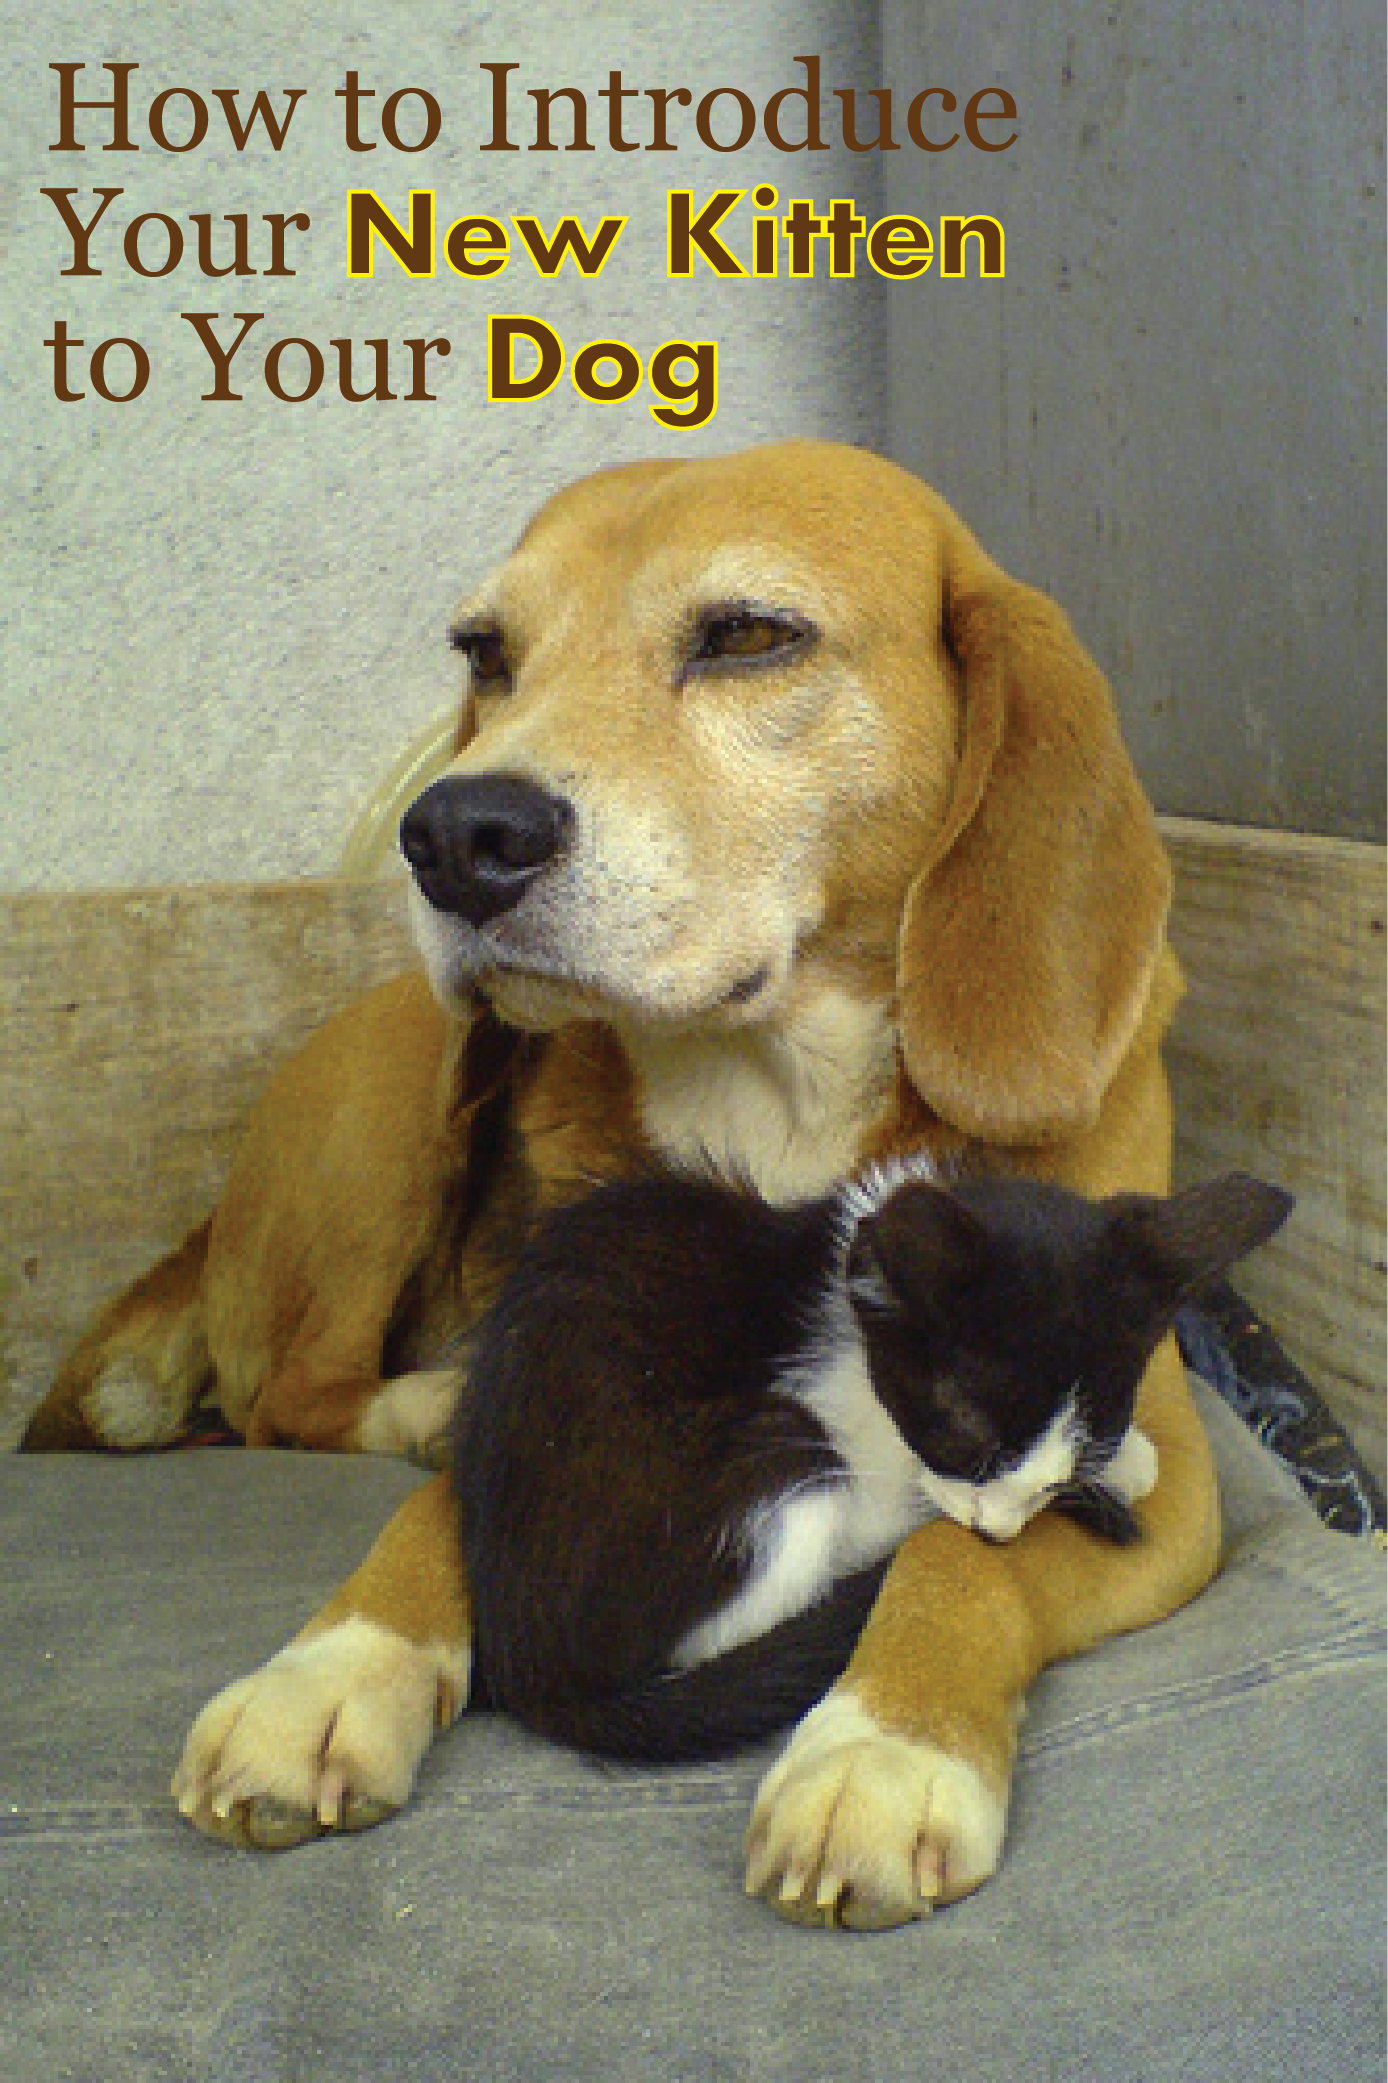 How To Introduce Kittens To Dogs Your Cats And Dogs Can Get Along Kittens Dogs Animals Friendship